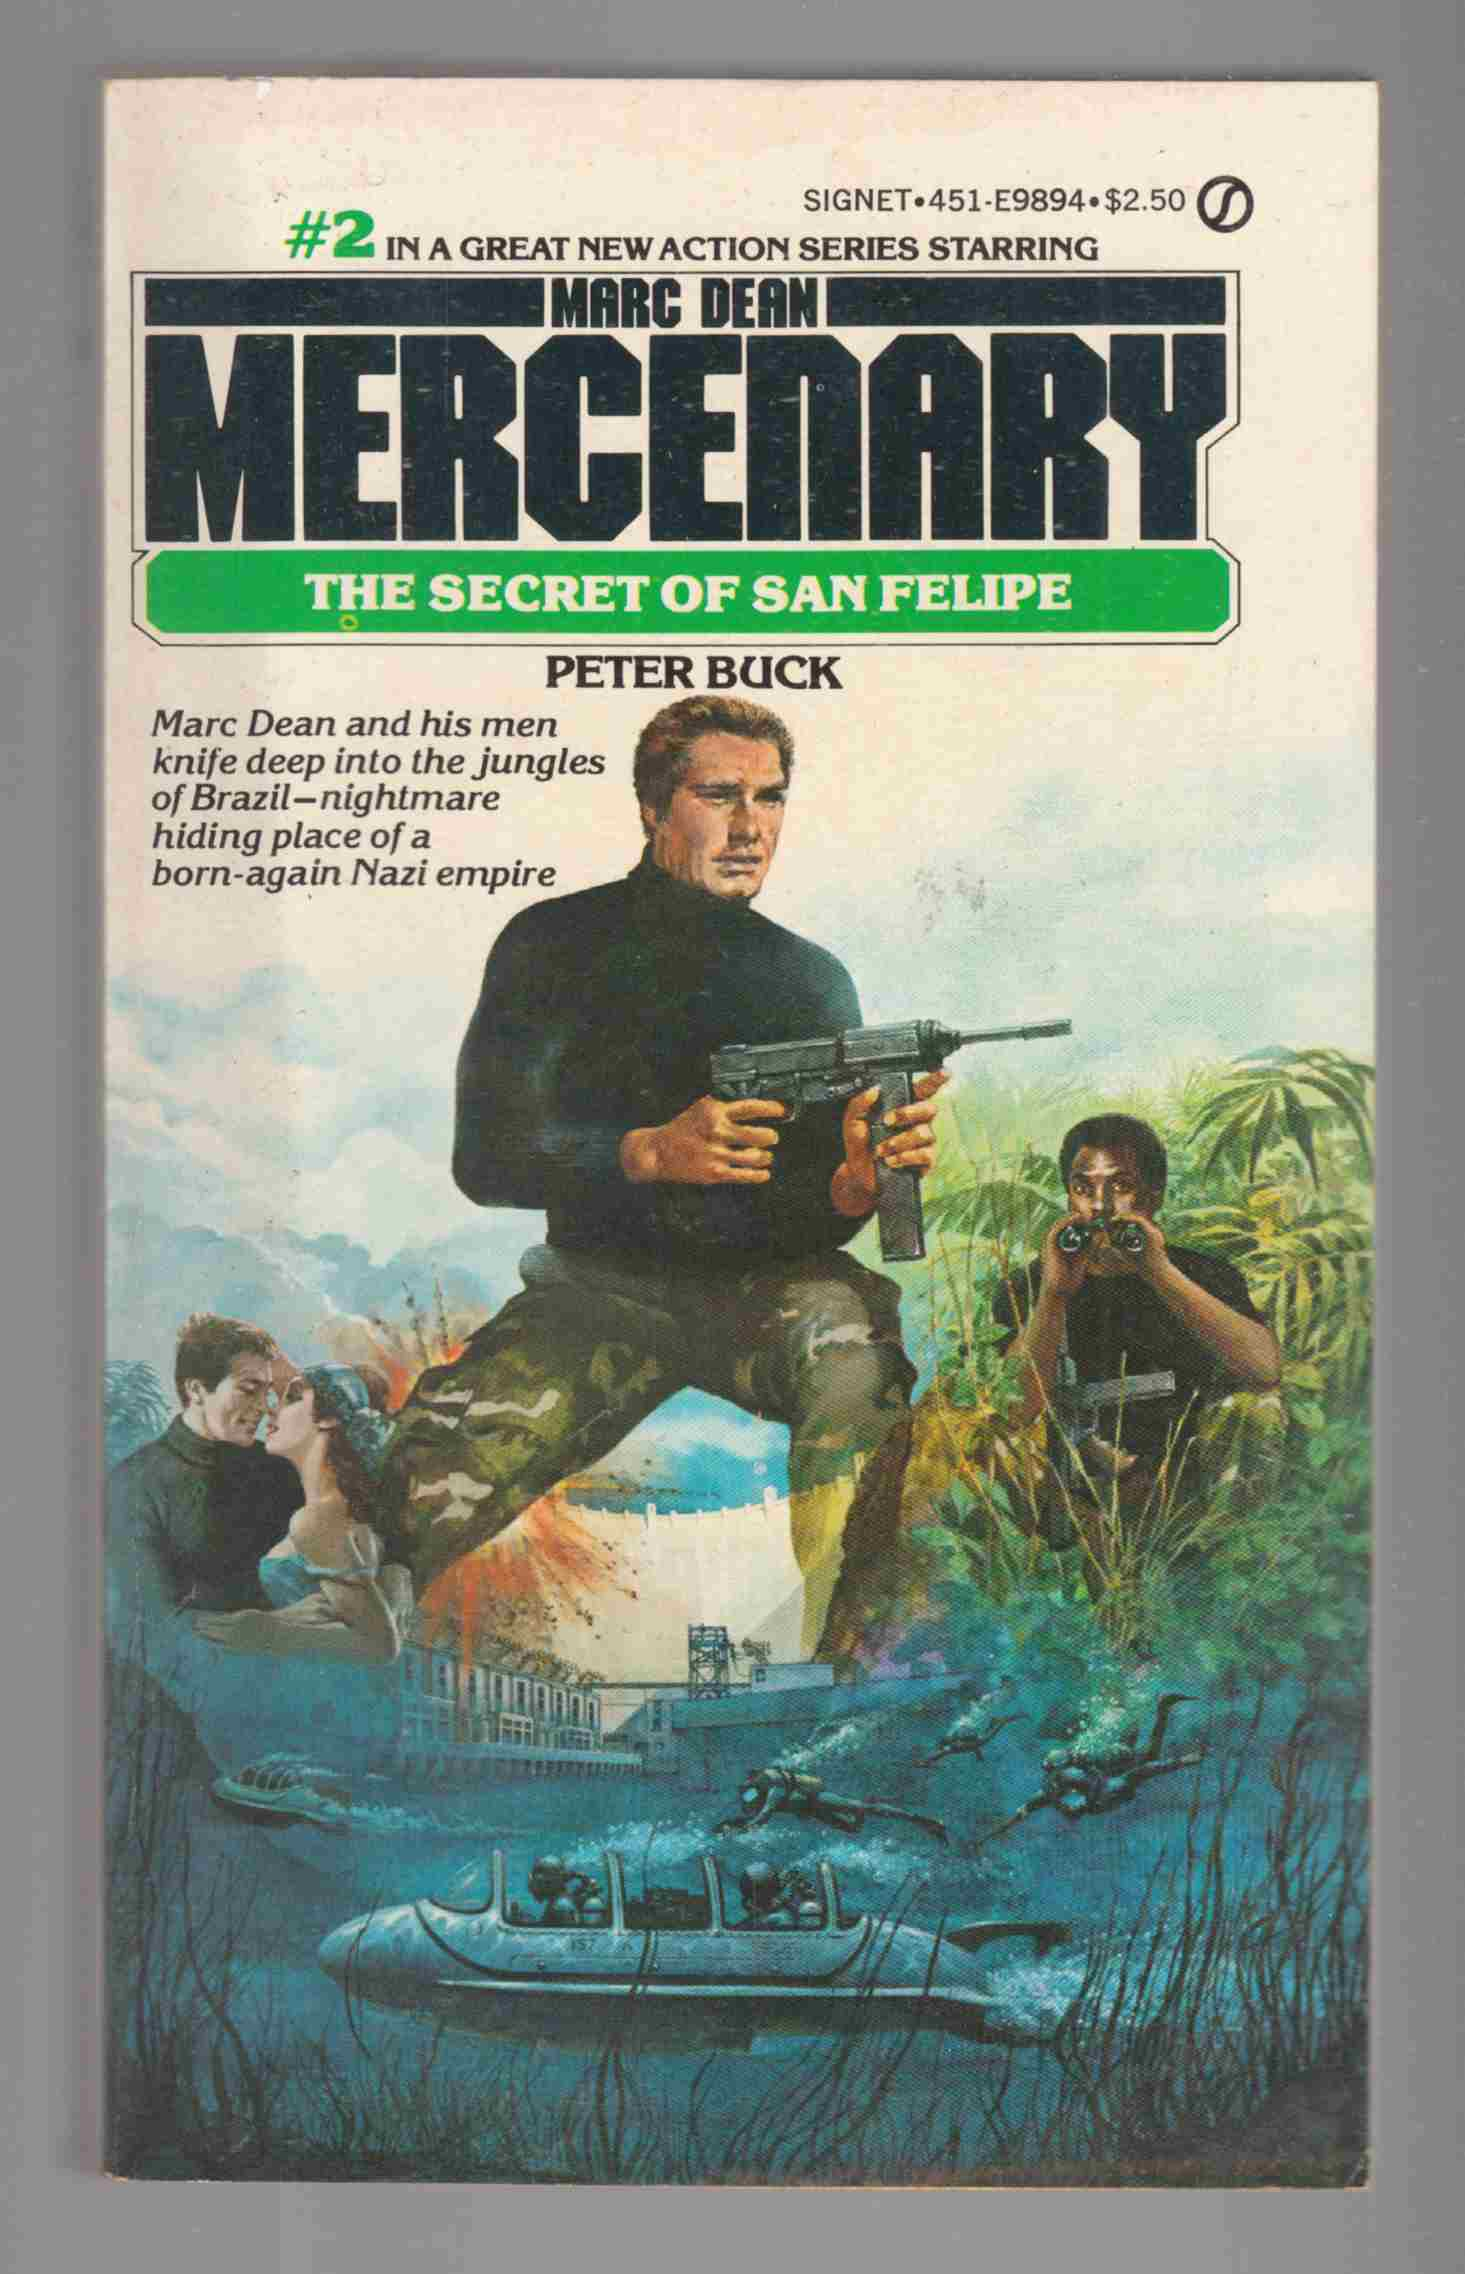 Image for Marc Dean Mercenary #2: The Secret of San Felipe